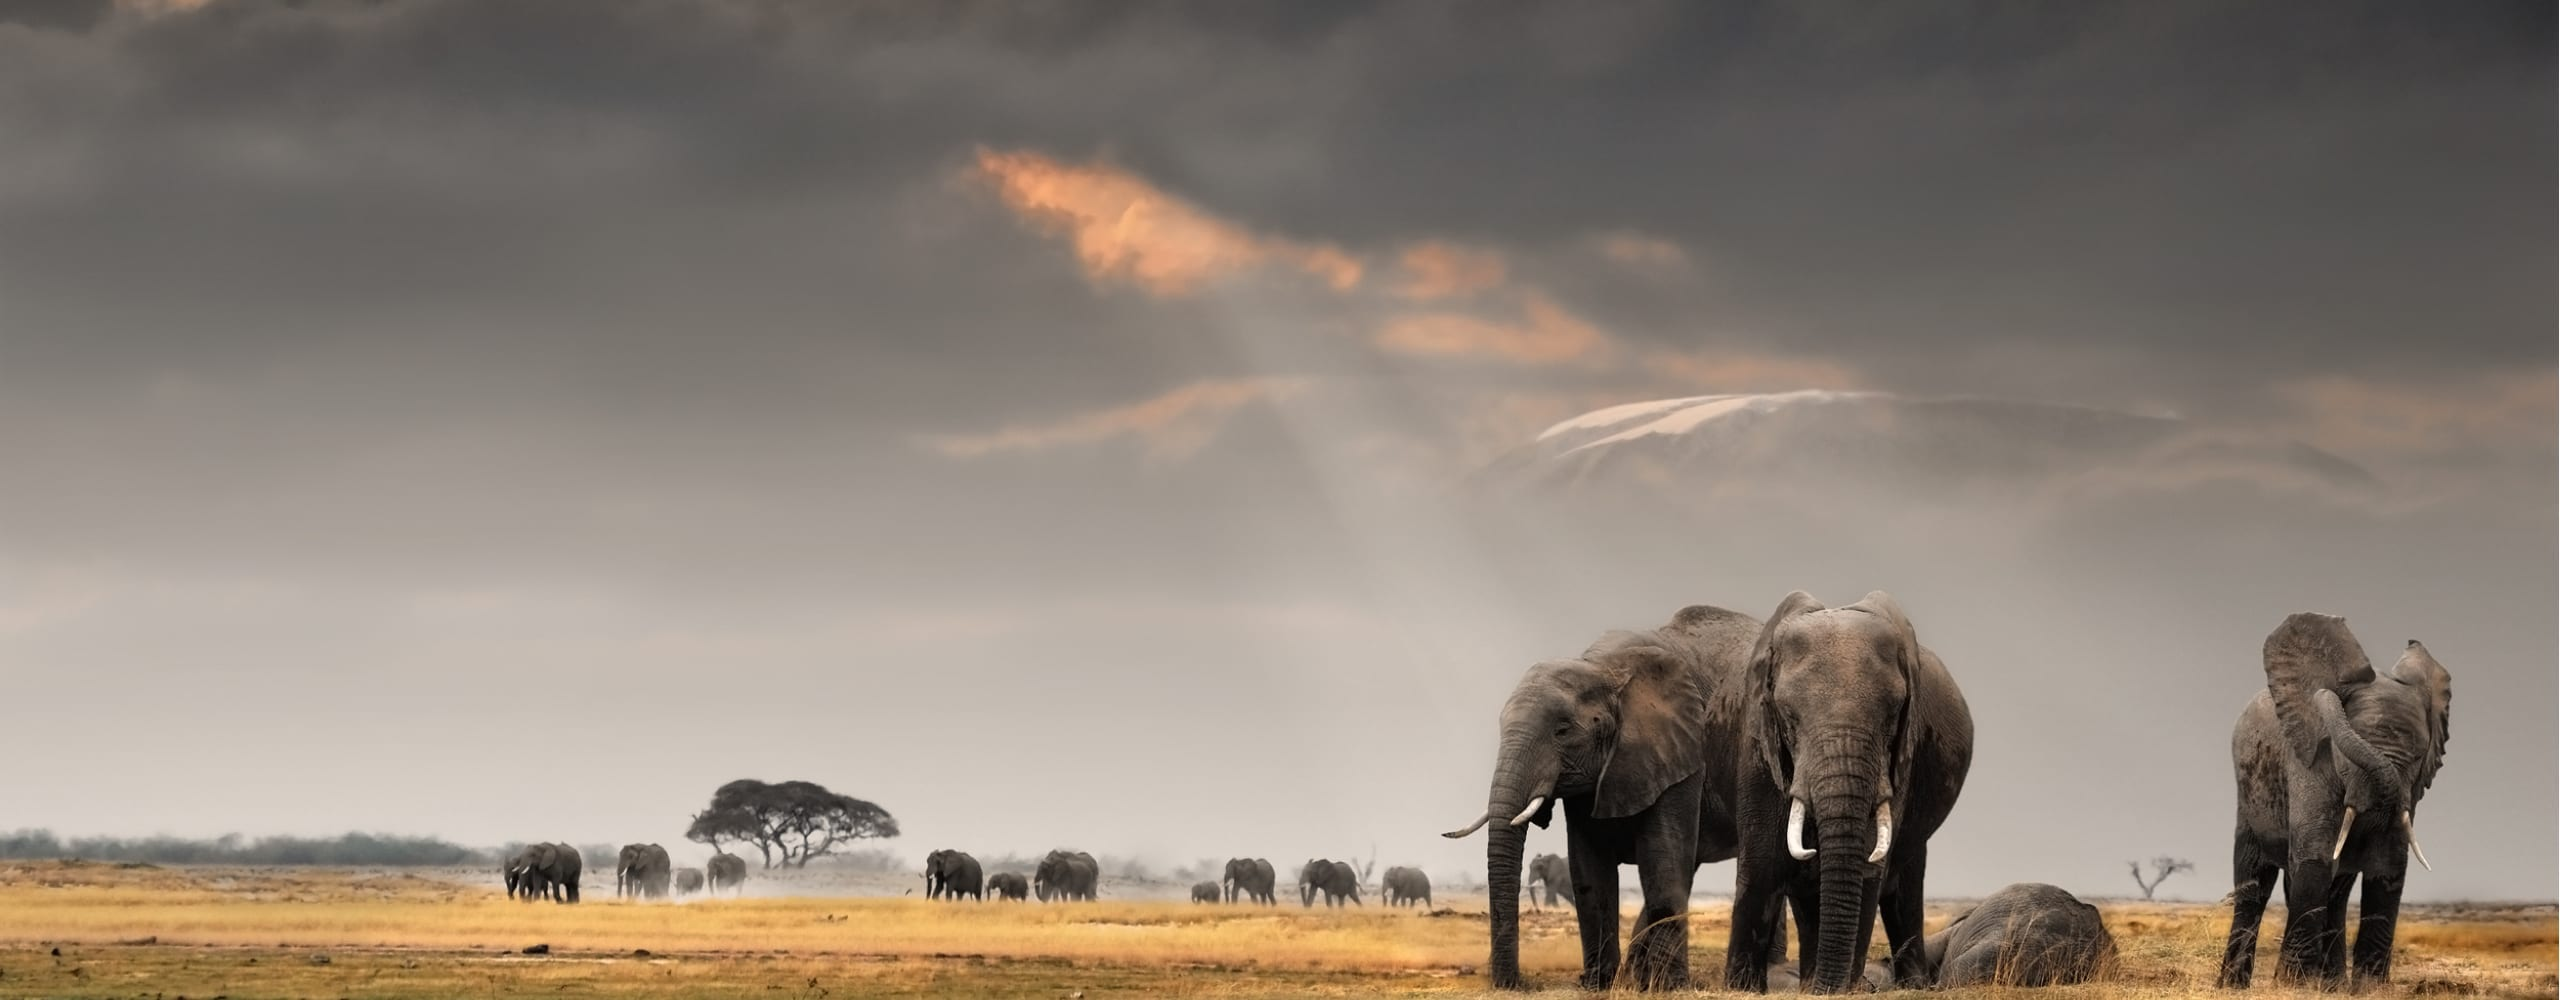 Elephant can be found all over East Africa. © Shutterstock